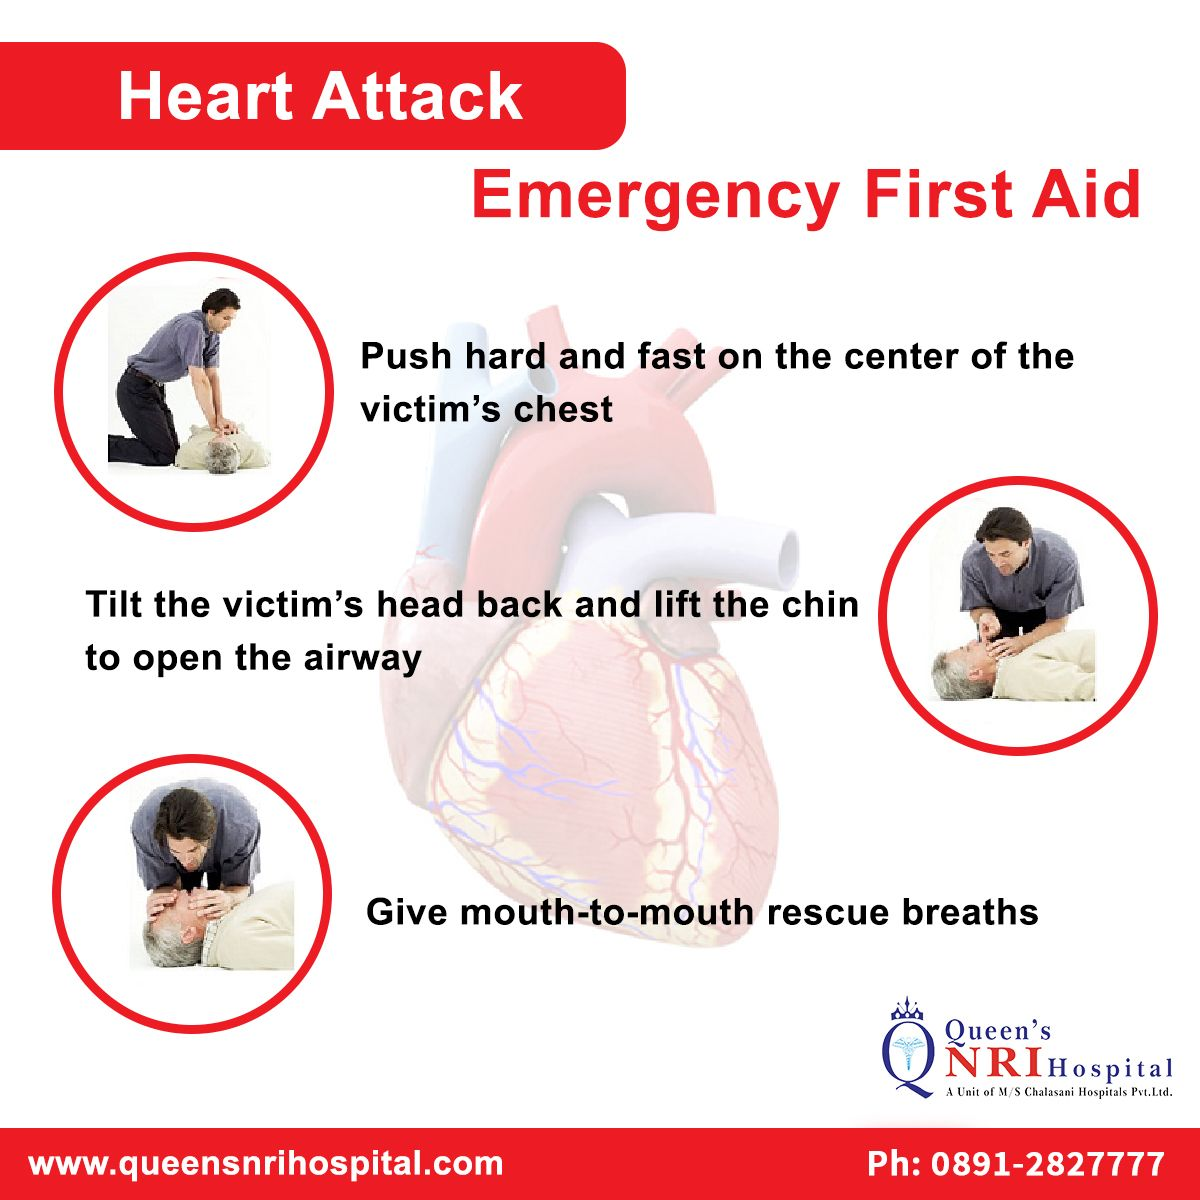 Emergency First Aid for Heart attack